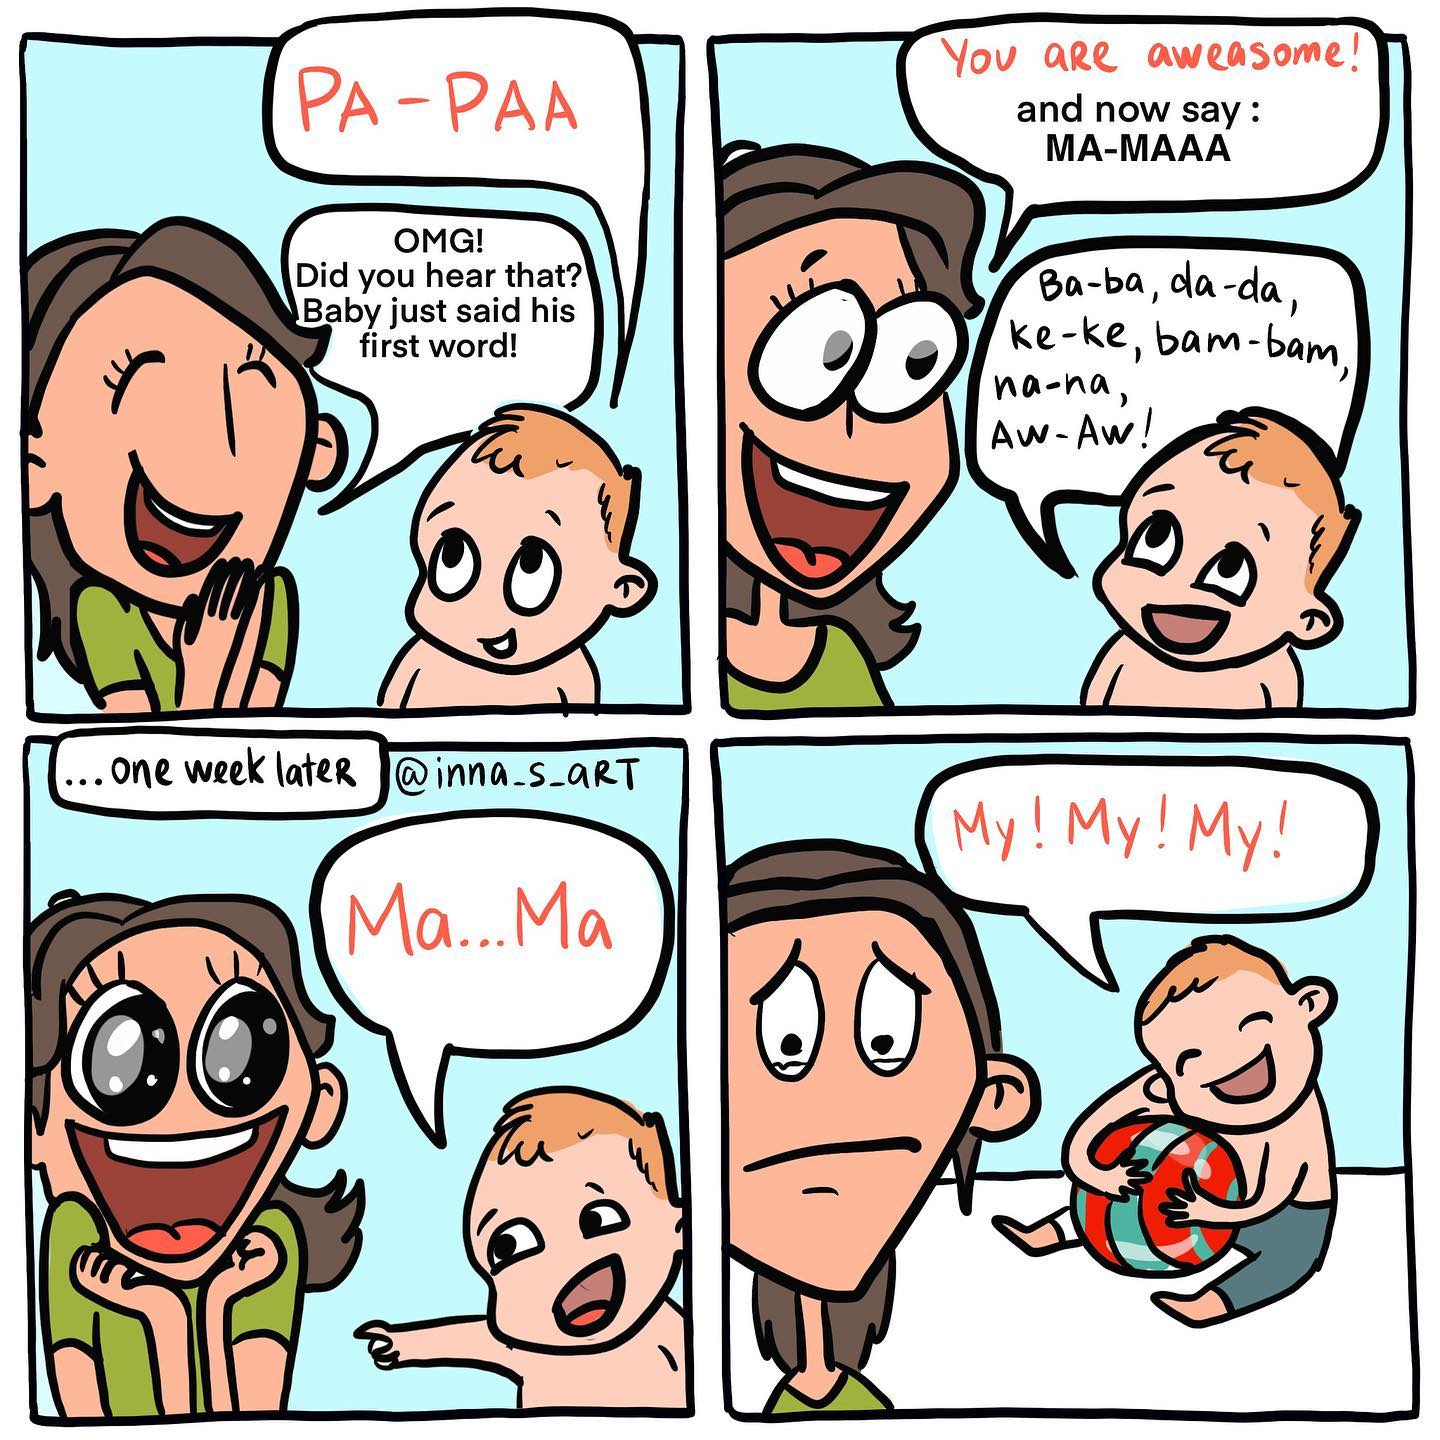 comics of a happy woman because her child said mama